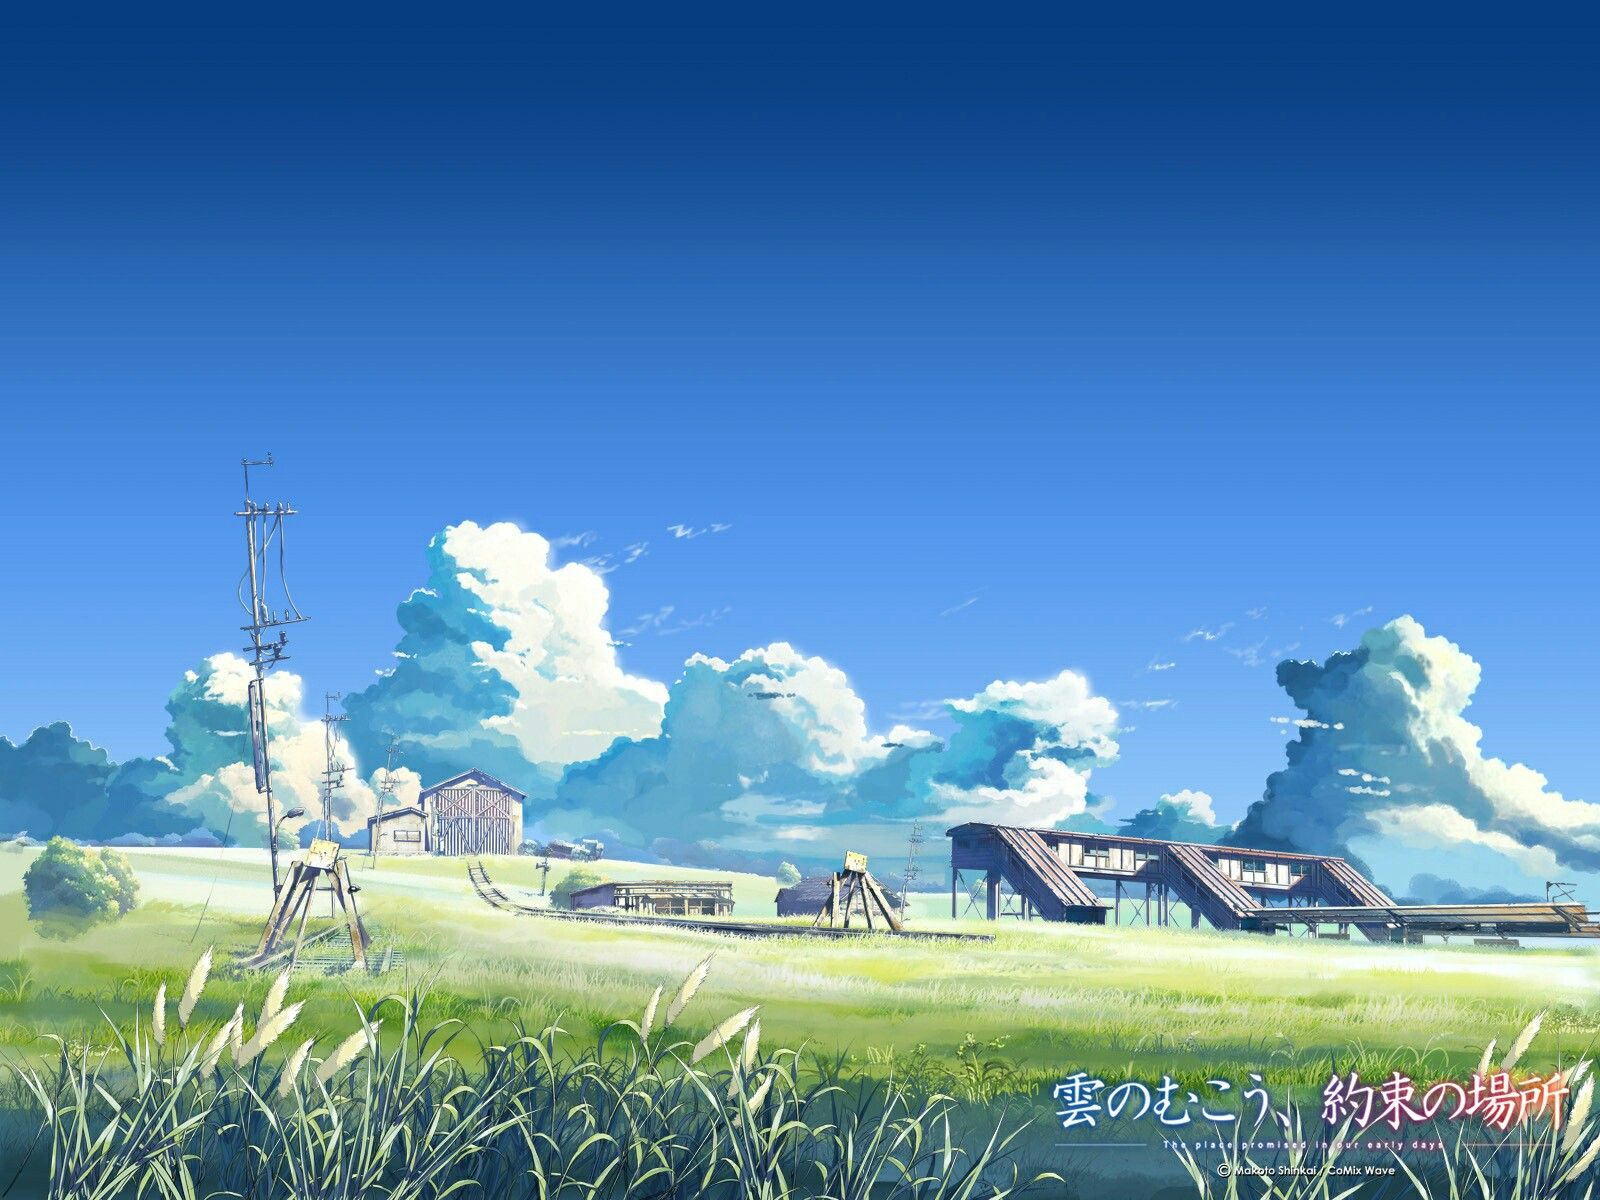 Anime World Hd Place Anime Scenery Anime Background Scenery Wallpaper